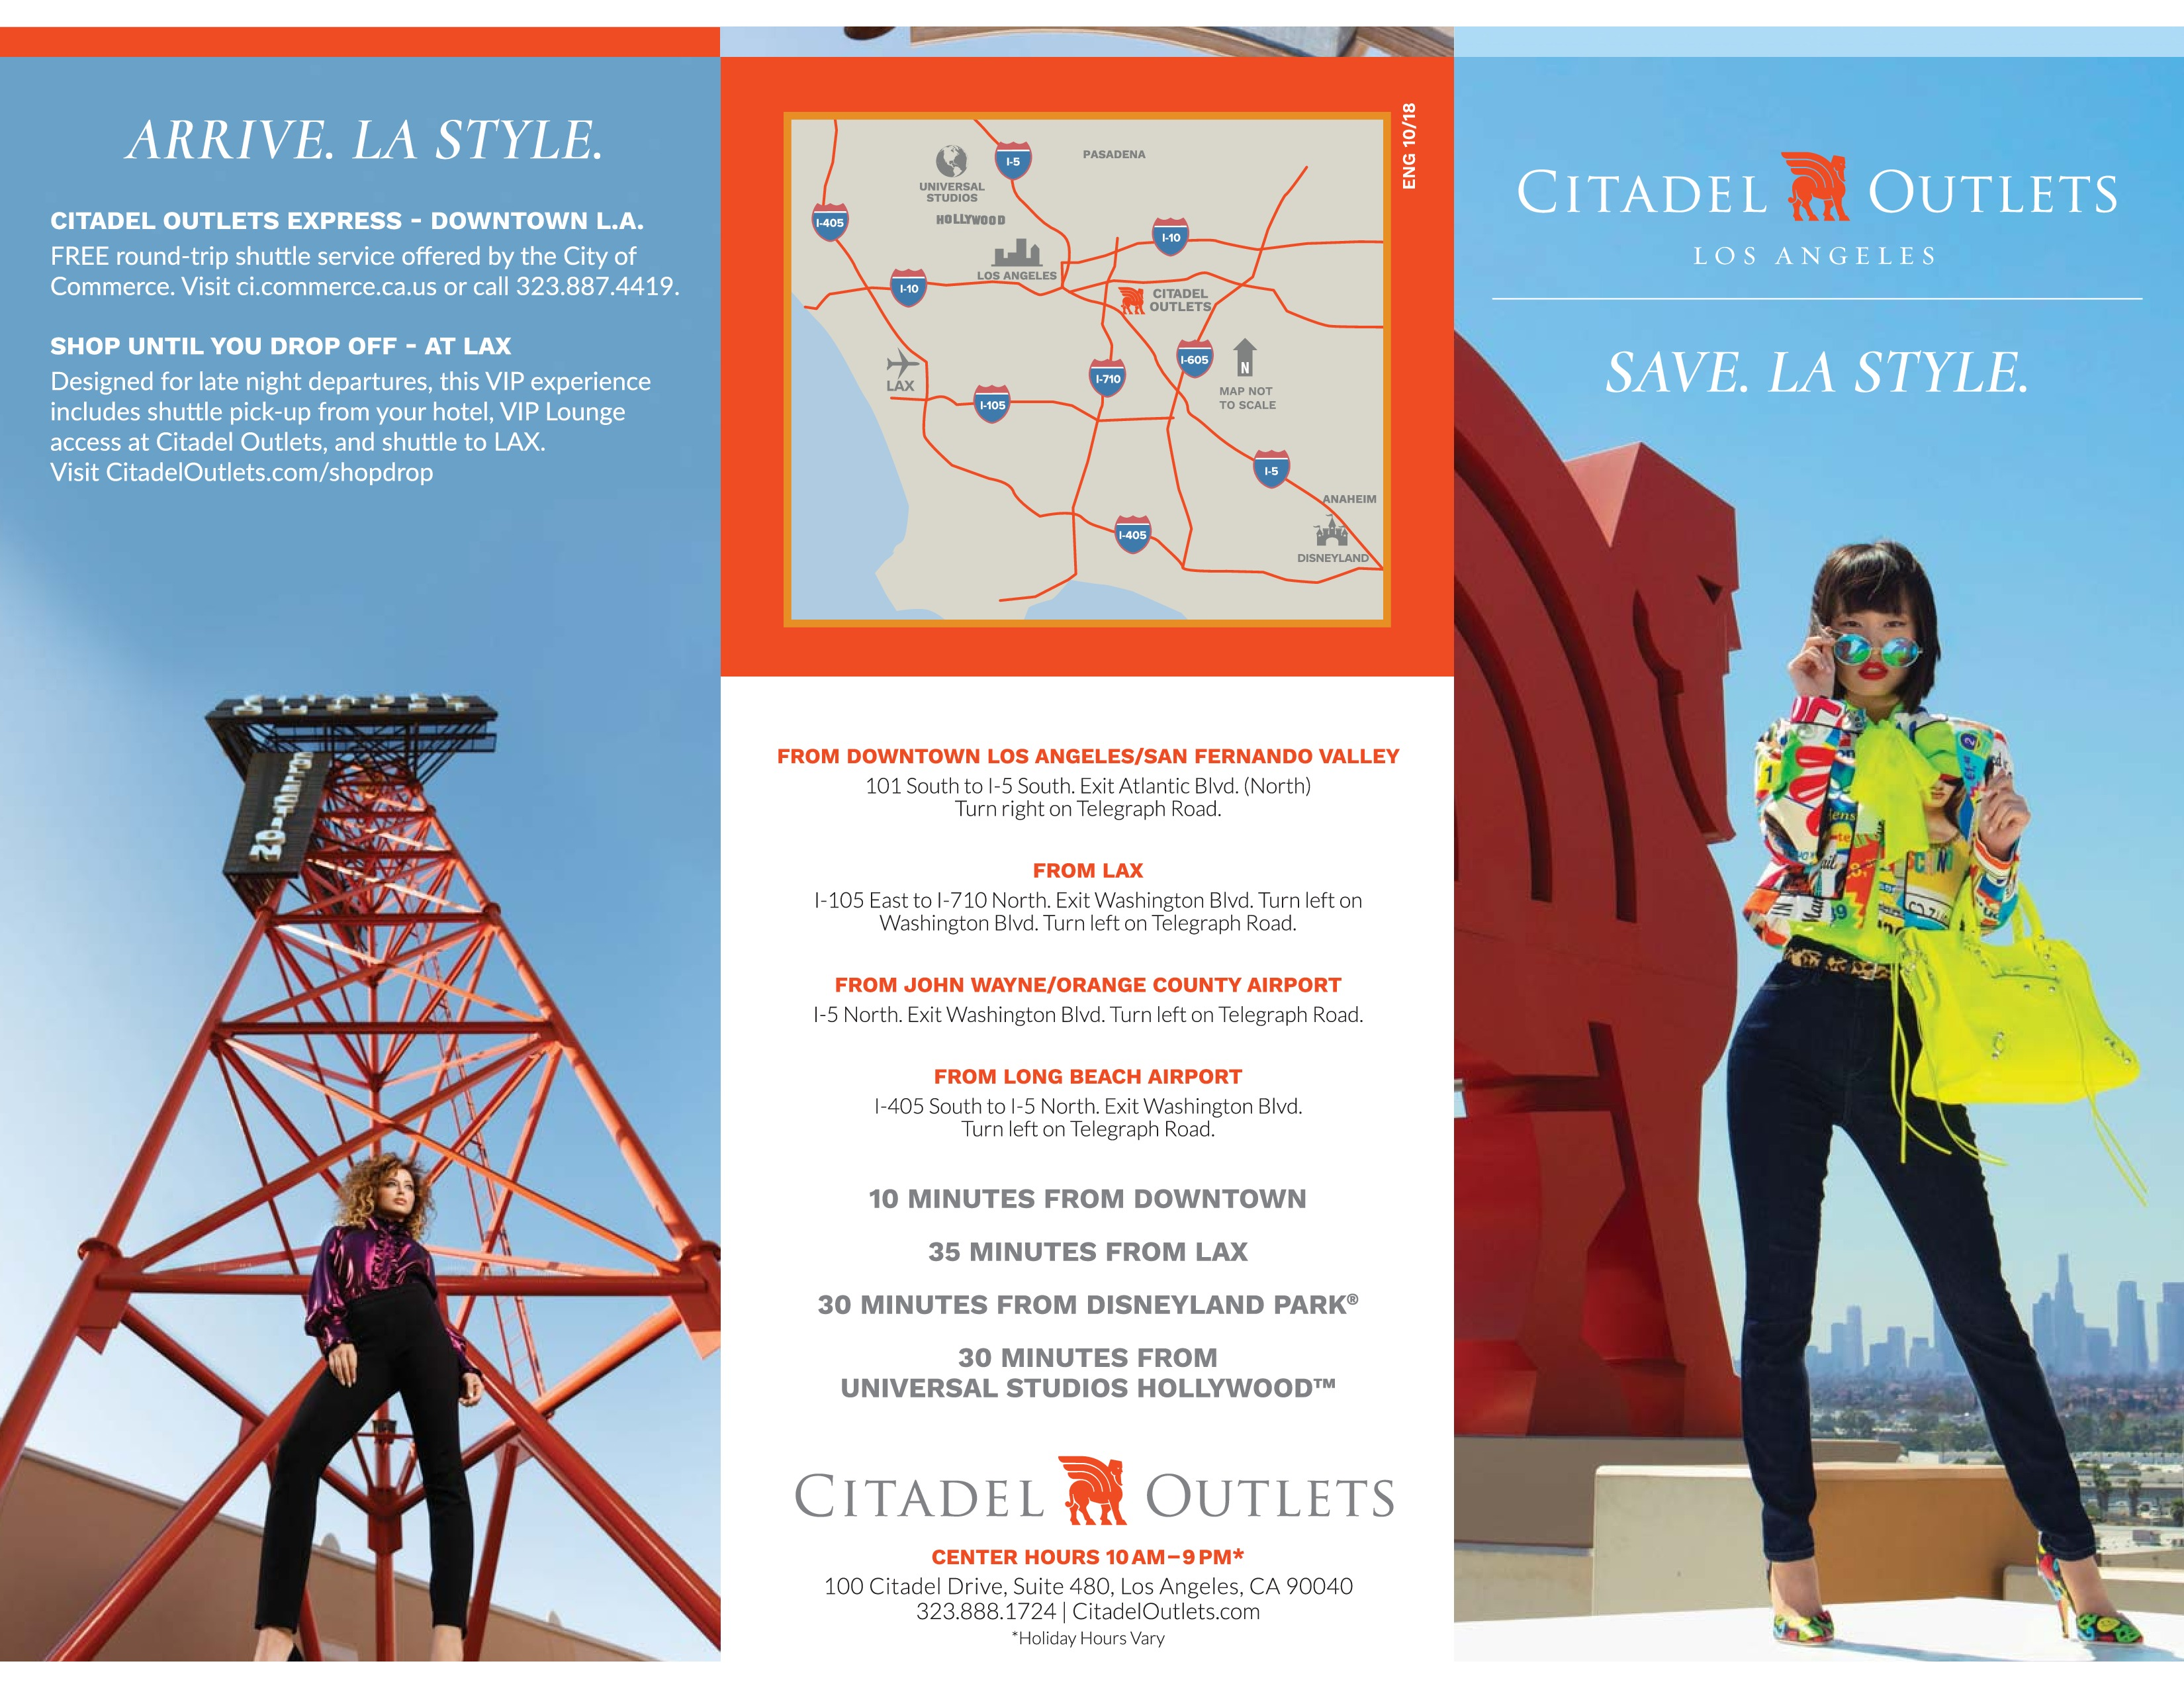 Citadel Outlets | Los Angeles, CA - visitorfun.com on